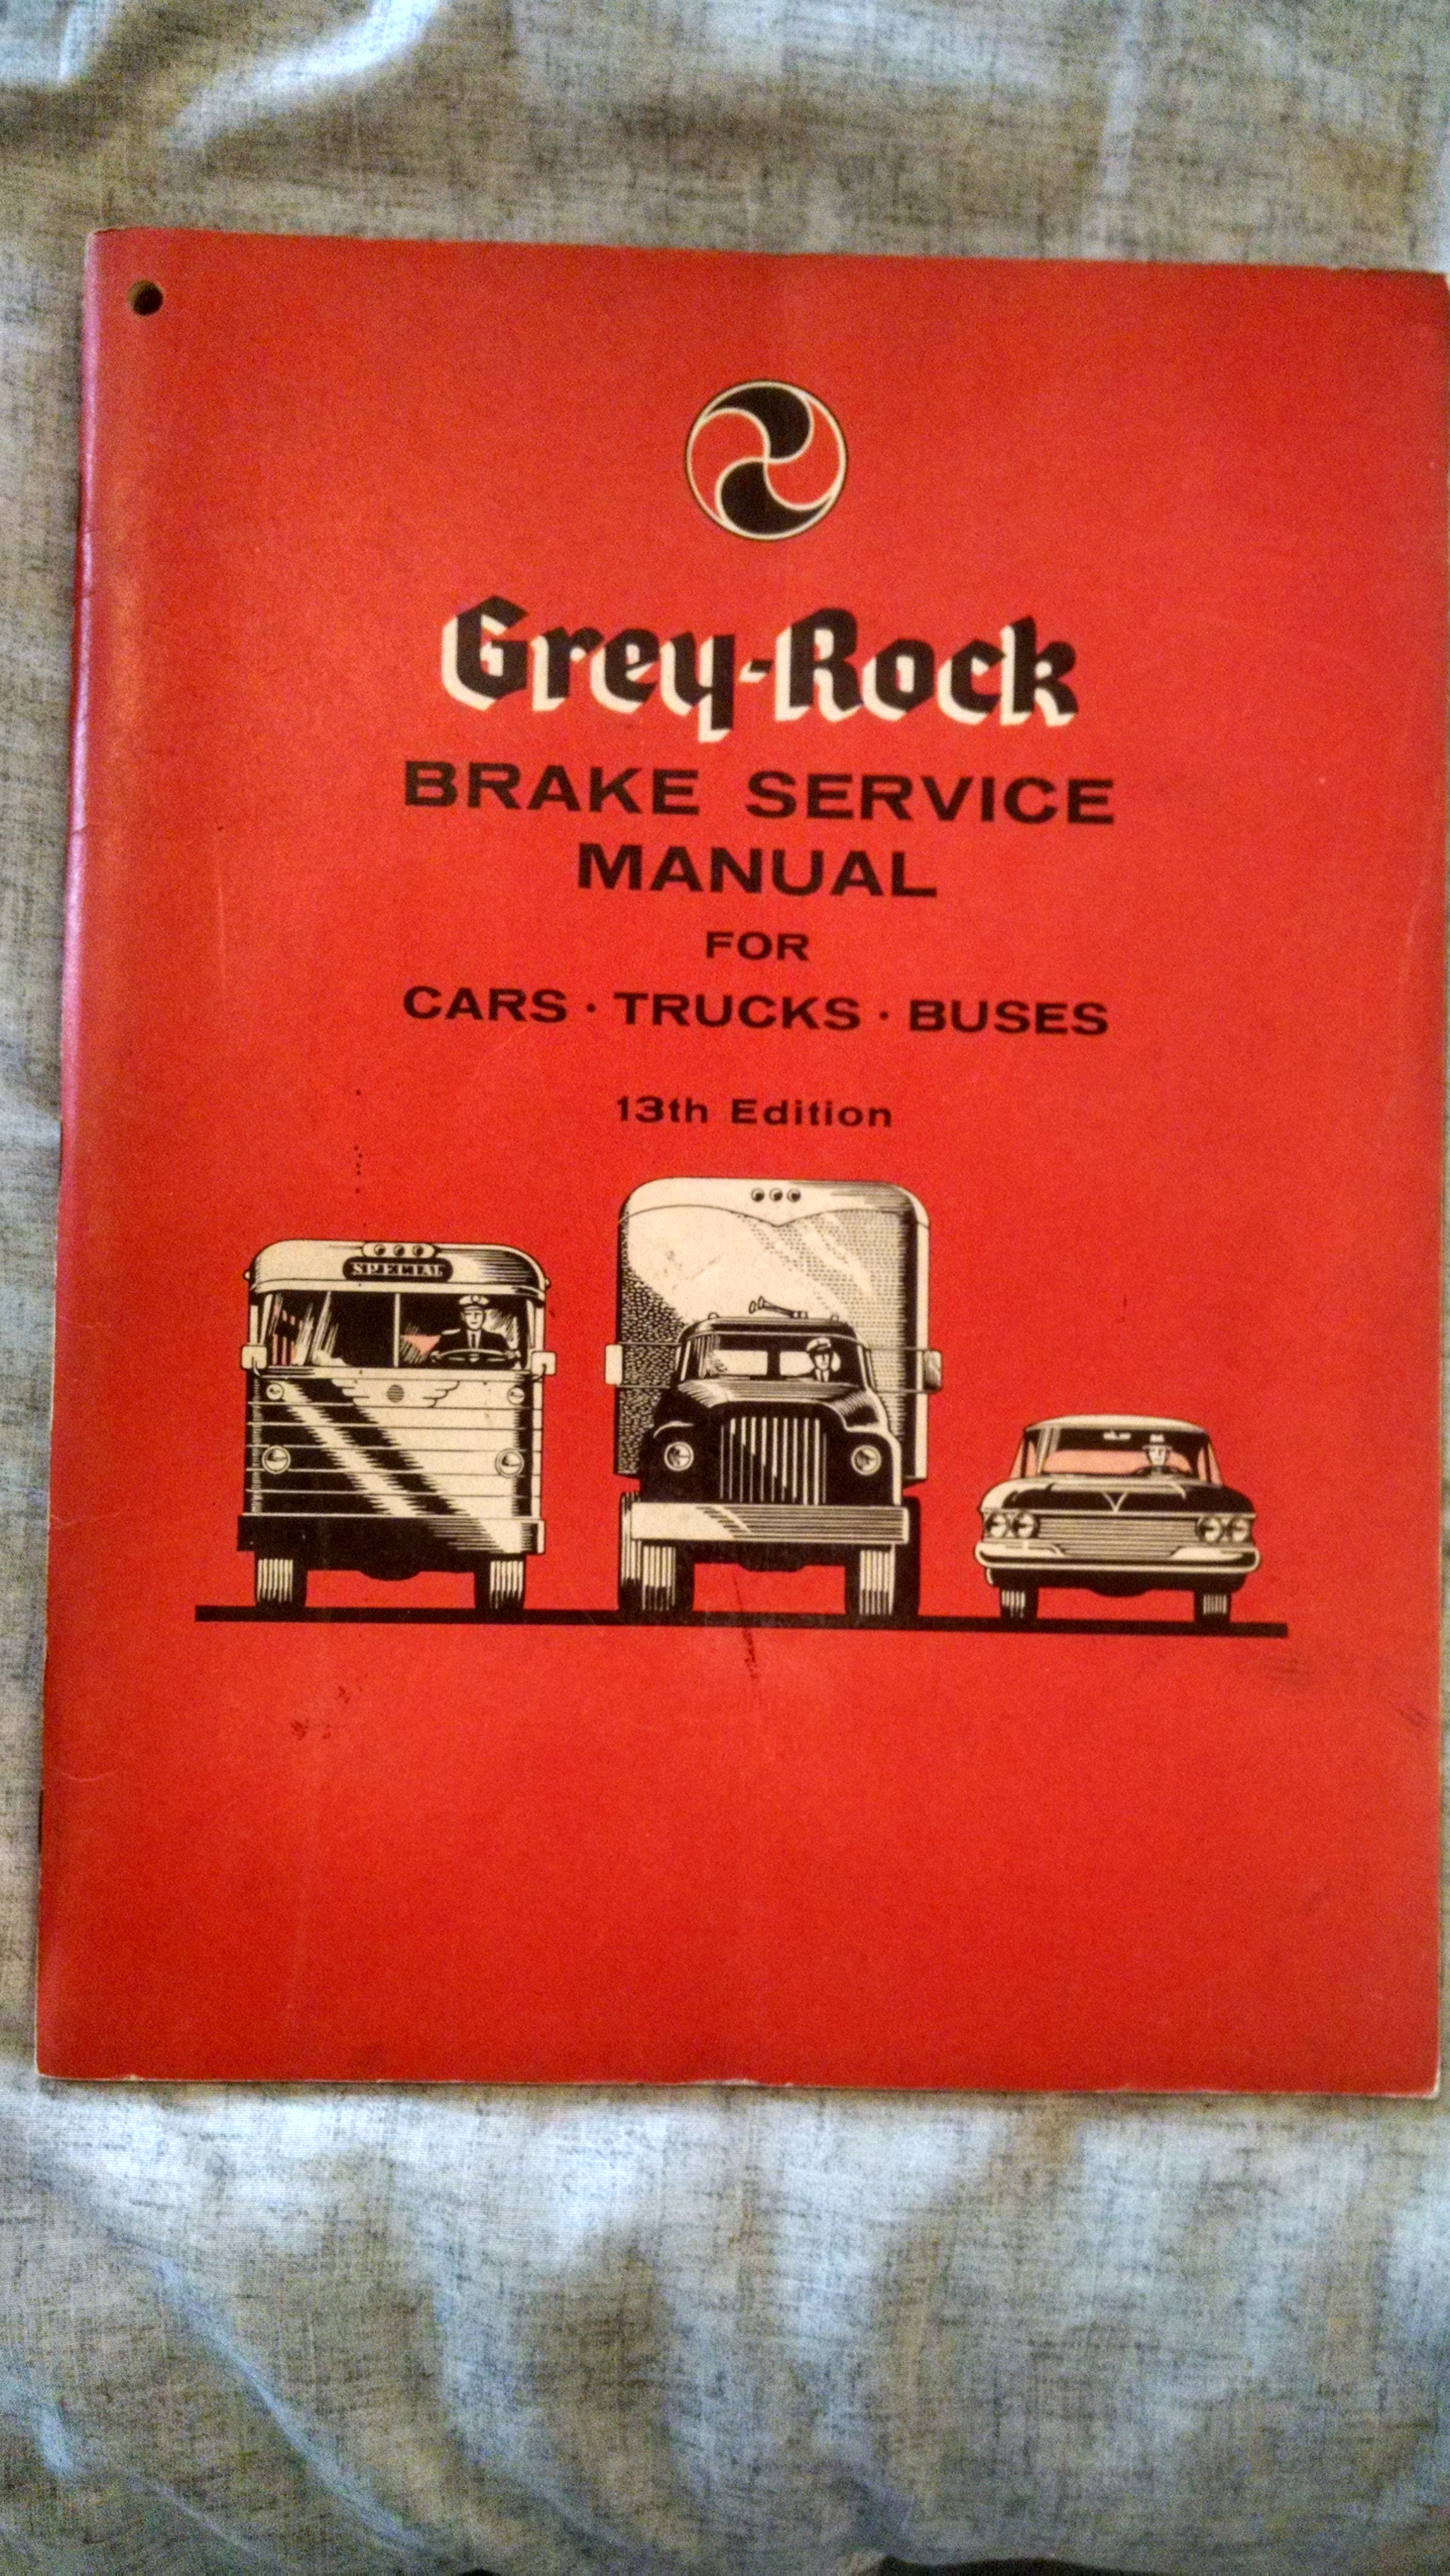 Image for GREY -ROCK BRAKE SERVICE MANUAL FOR CARS-TRUCKS- BUSES 13TH EDITION